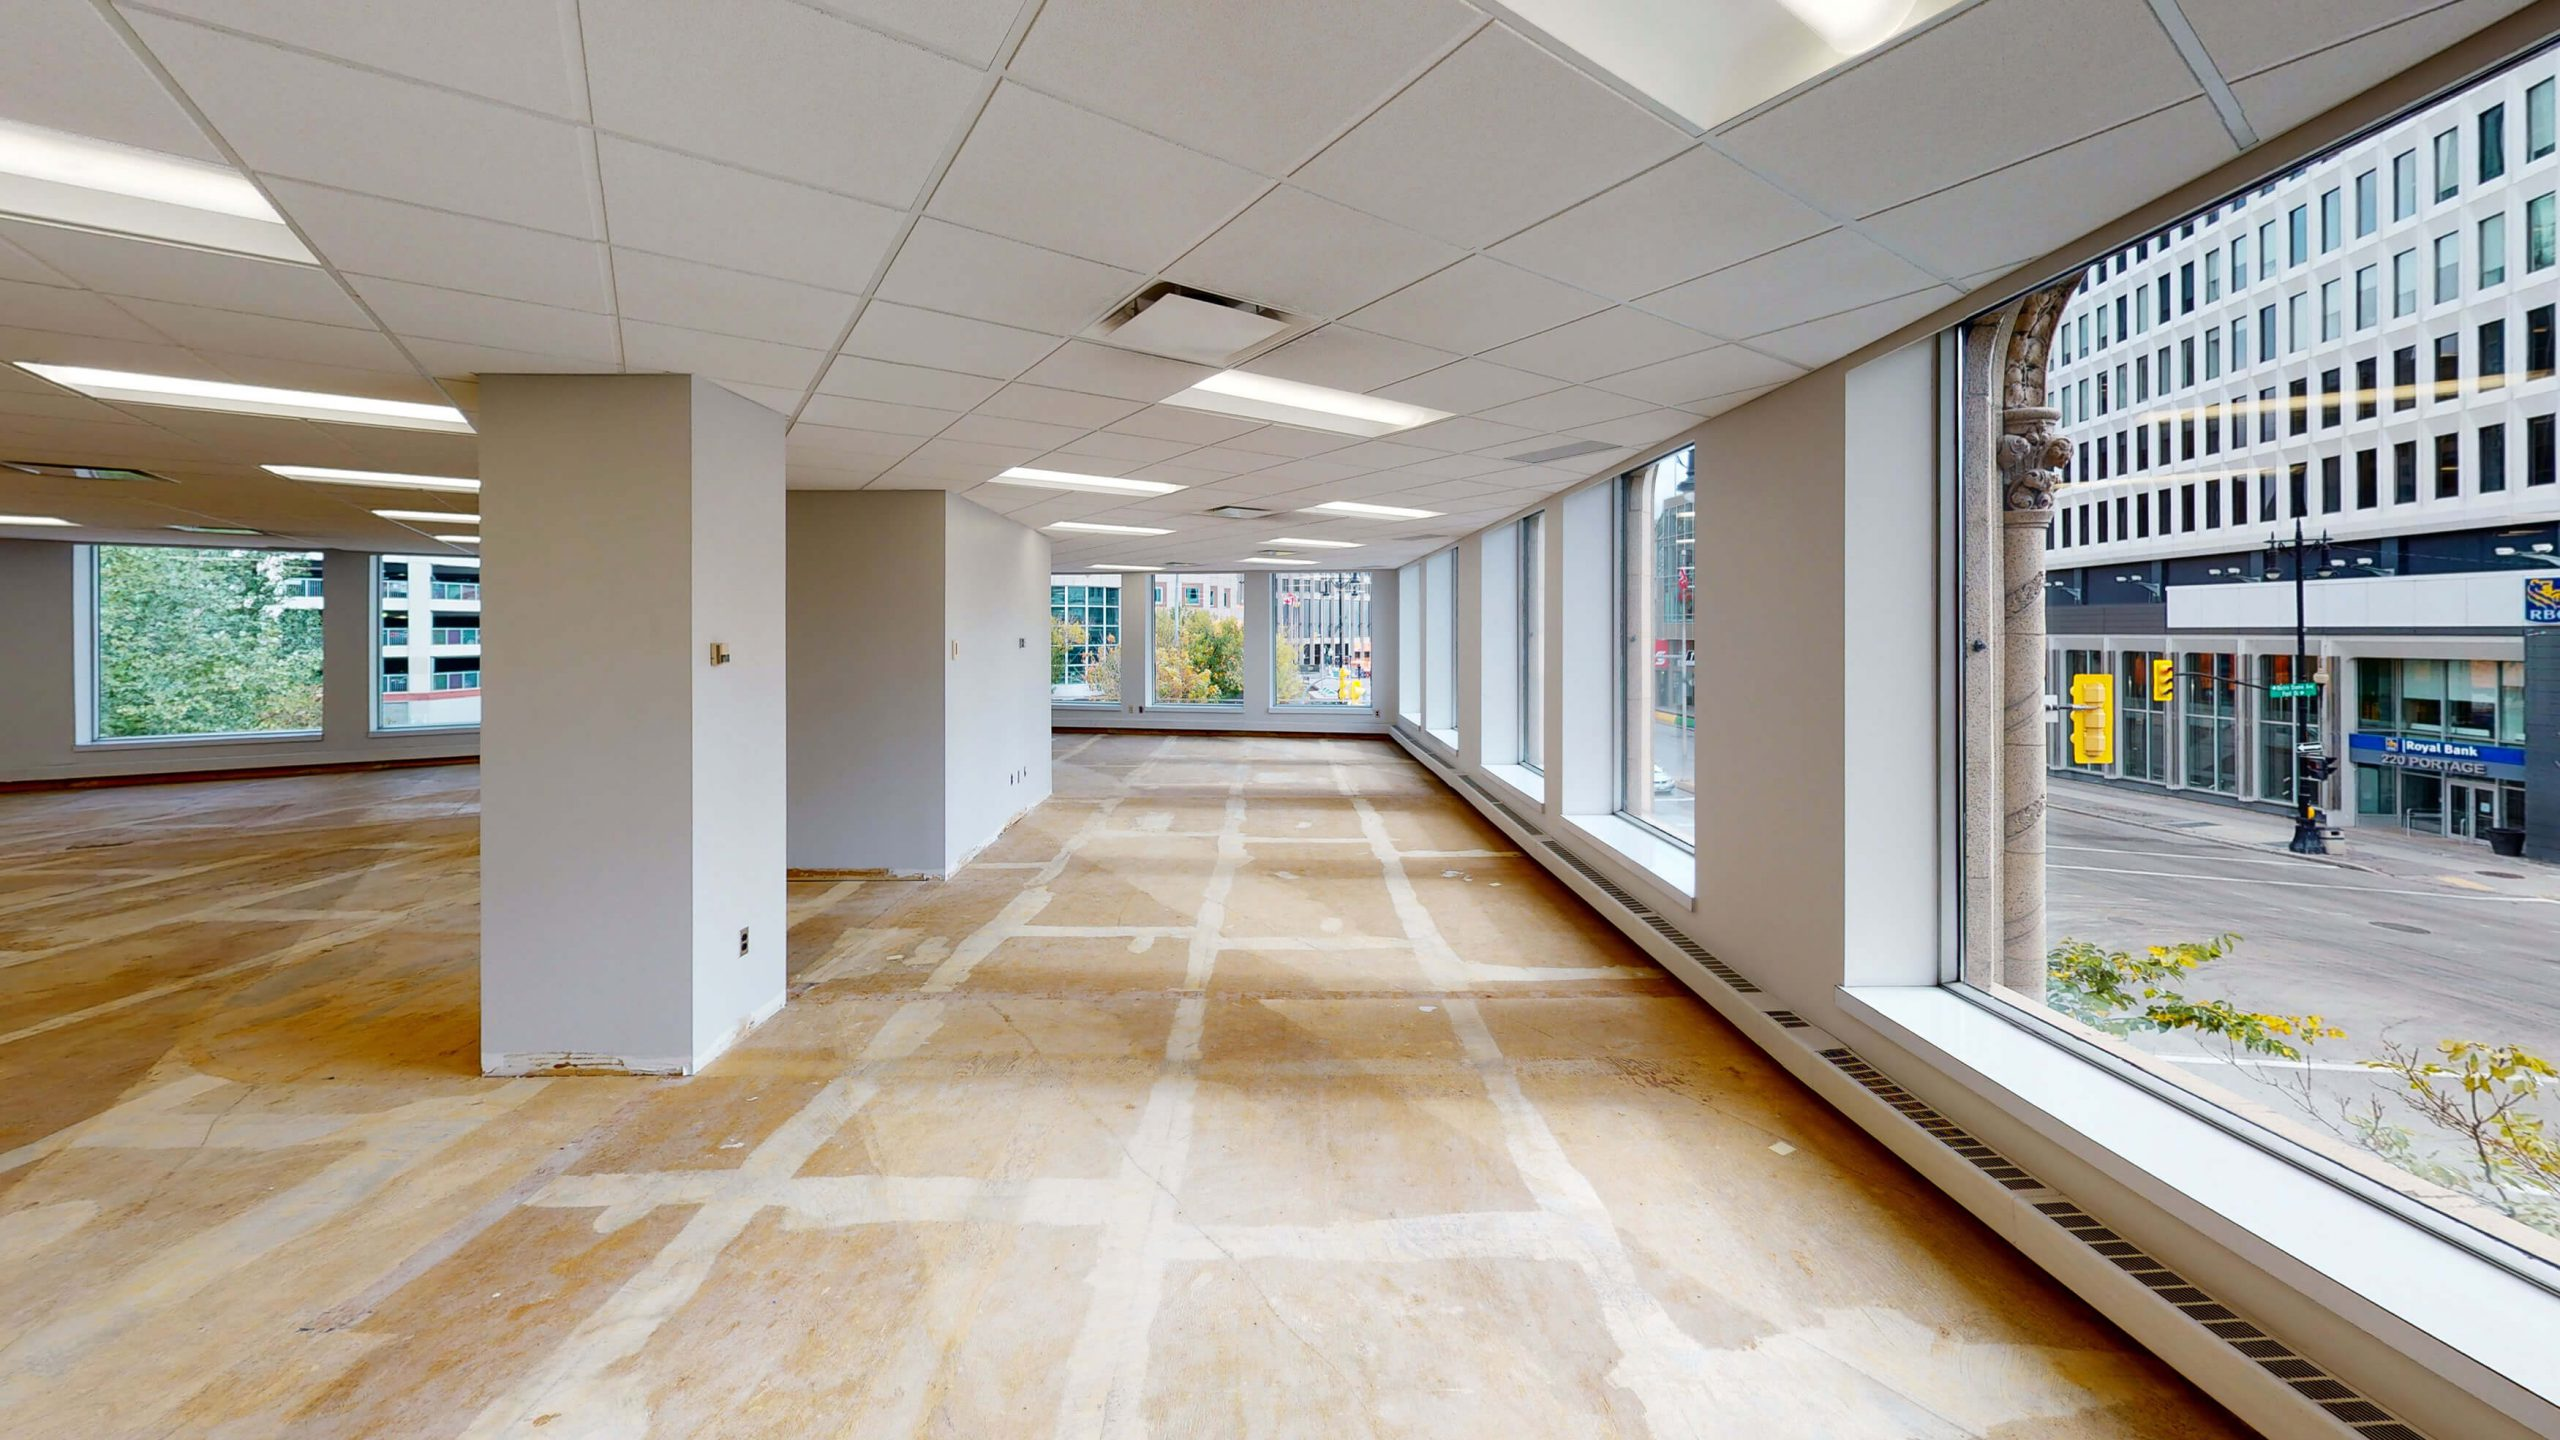 Empty building interior with unfinished floors